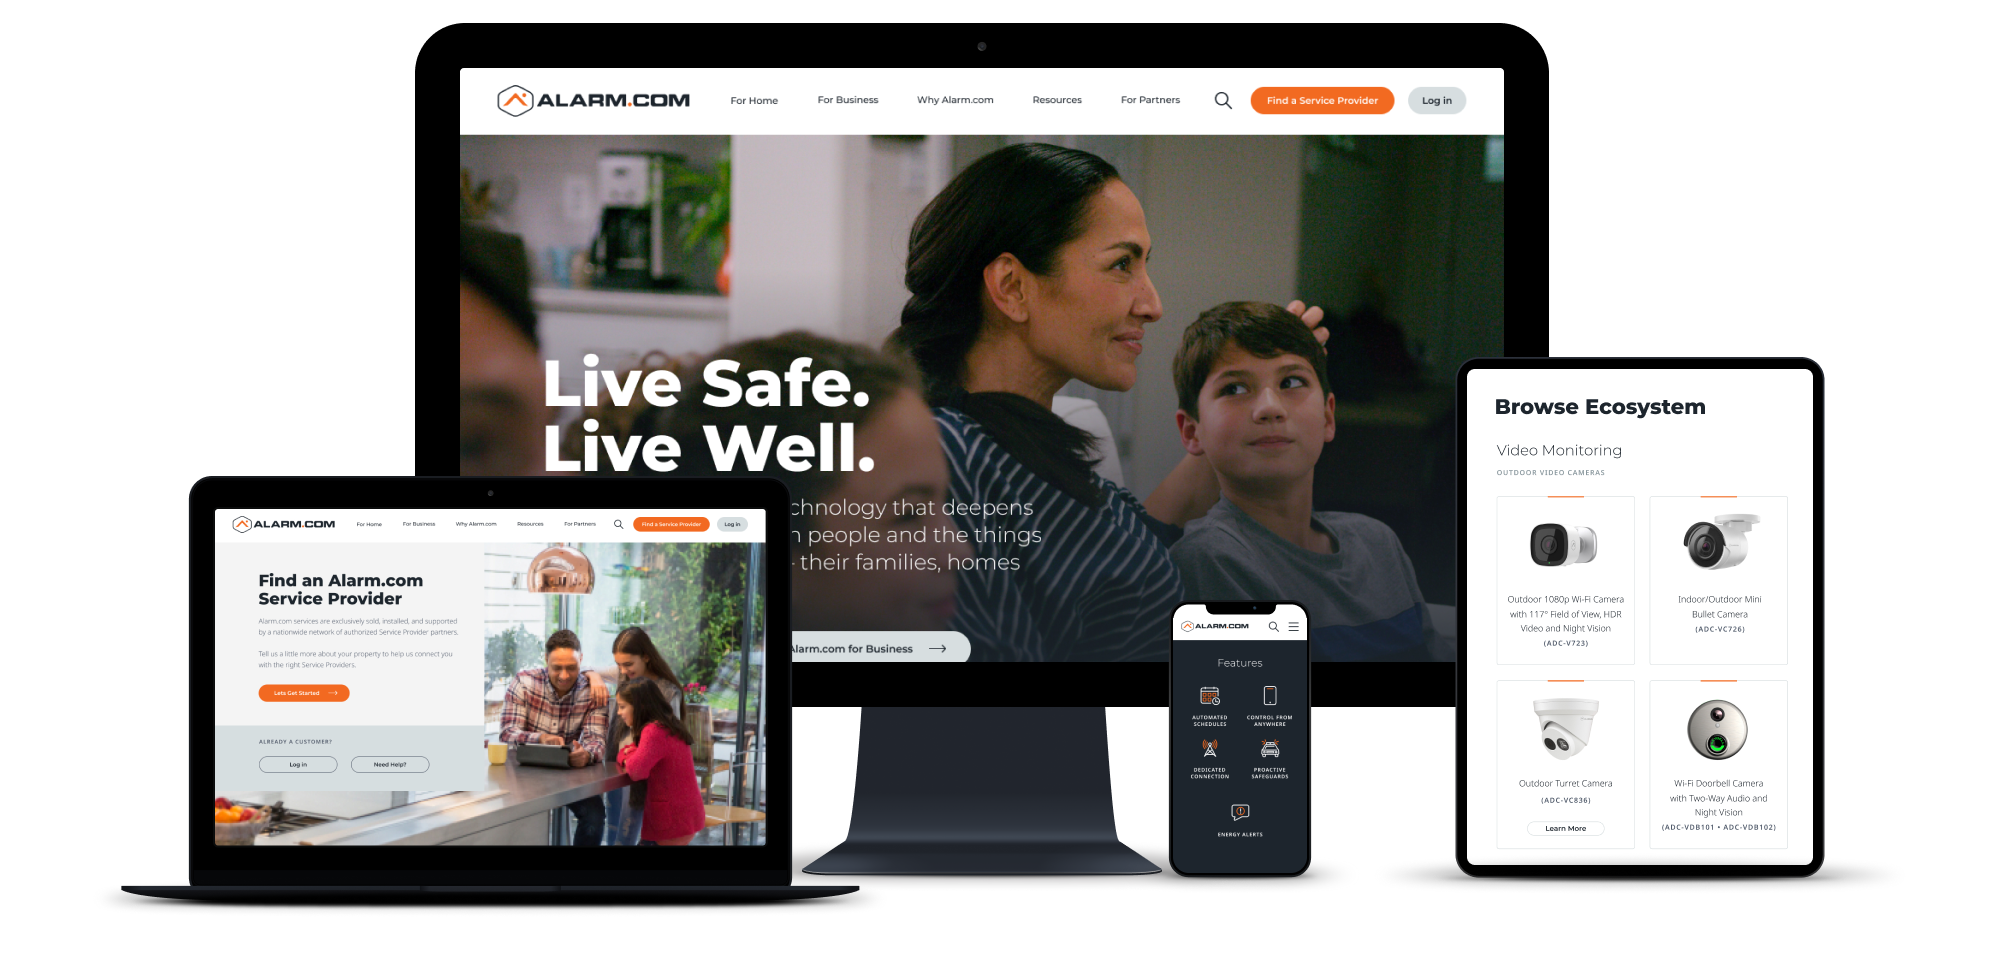 An image of the Alarm.com redesigned website on various screen types - mobile, laptop, tablet, and large monitor.